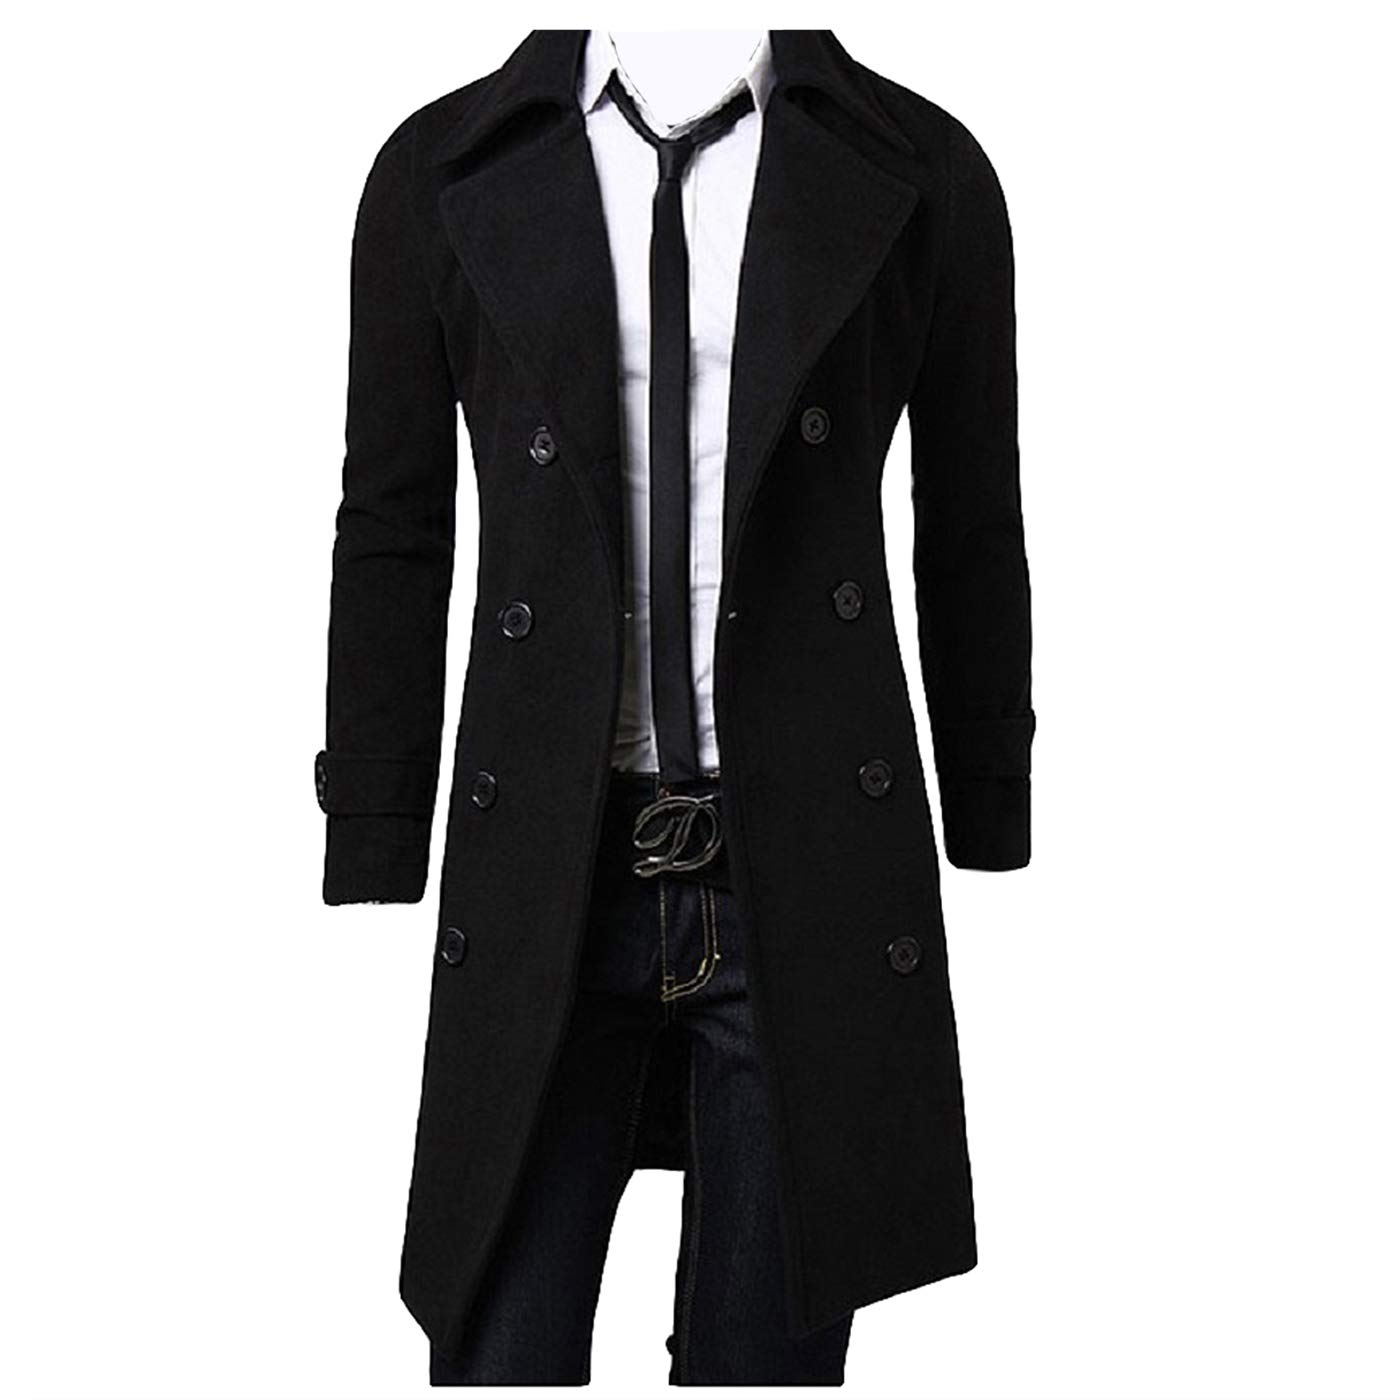 Men Winter Trench Coat Slim Fit Turn Down Collar Knit Cuffs Woolen Coat Business Jacket Overcoat (Double Breasted Black, L) by Folima